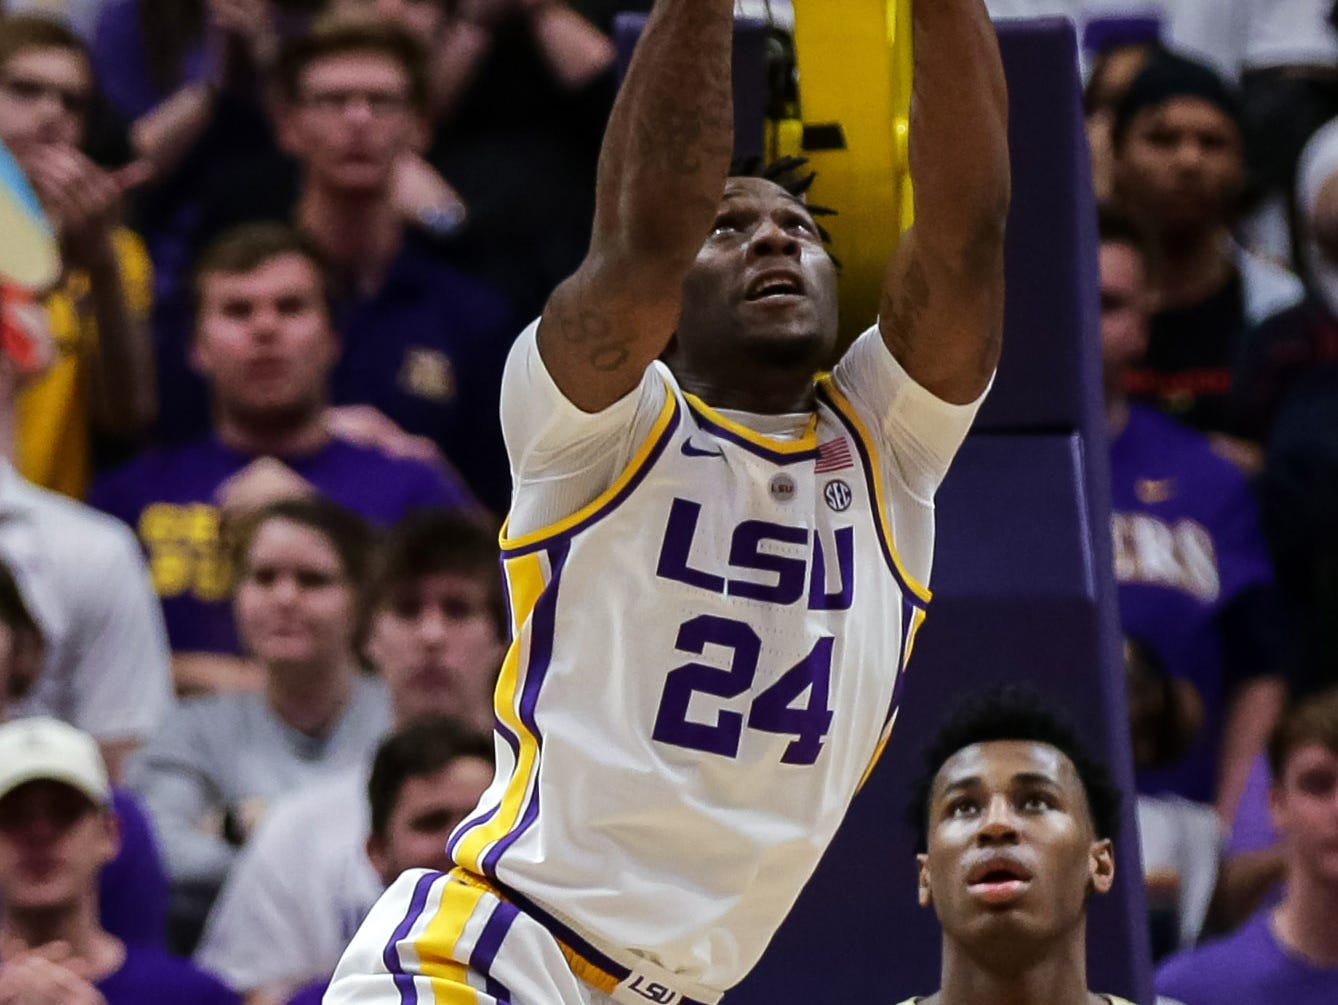 Mar 9, 2019; Baton Rouge, LA, USA; LSU Tigers forward Emmitt Williams (24) misses a dunk against Vanderbilt Commodores in the first half at Maravich Assembly Center. Mandatory Credit: Stephen Lew-USA TODAY Sports